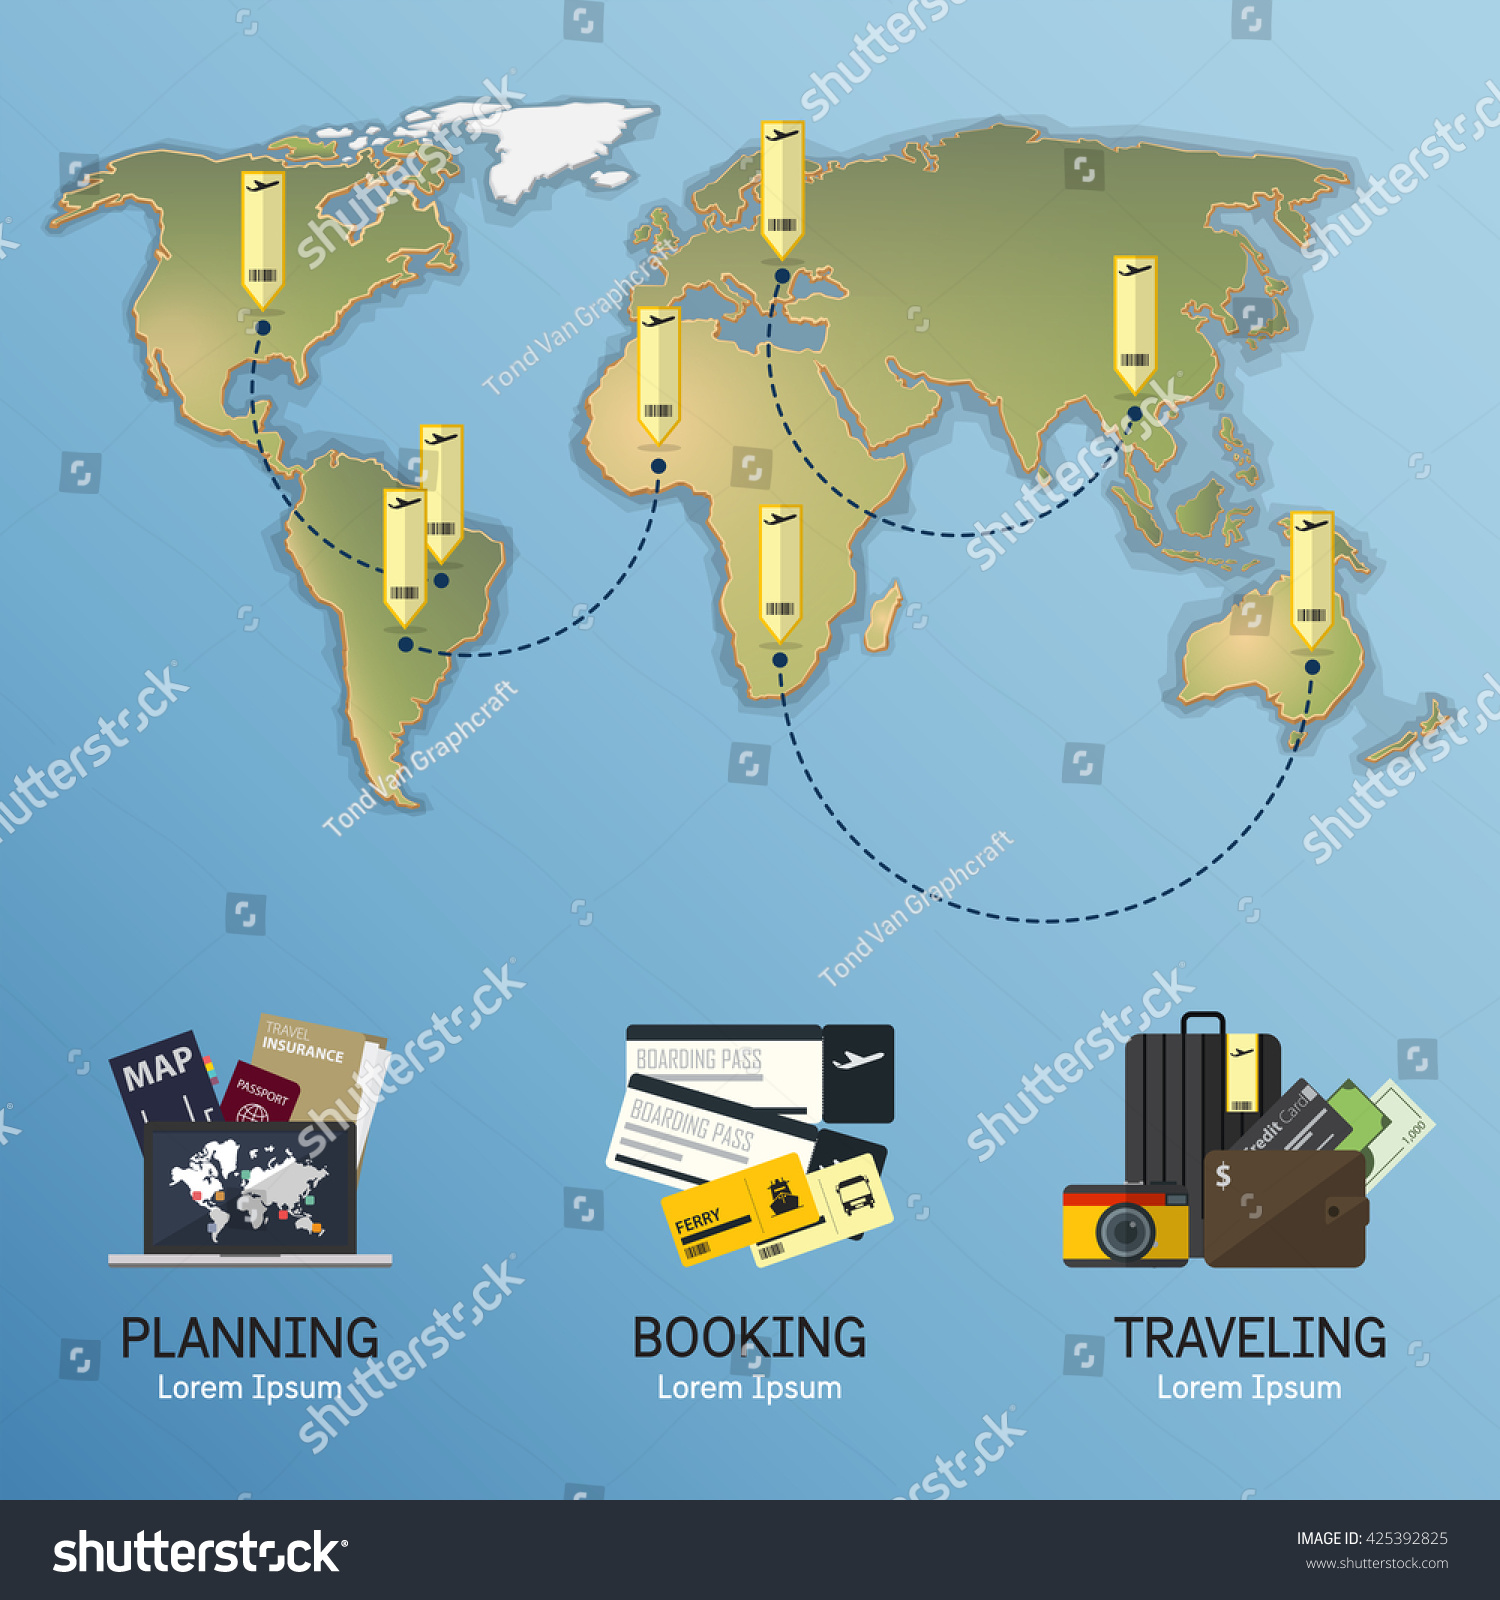 The Concept Of Infographic For Travel Planning Infographic – World Map For Travel Planning